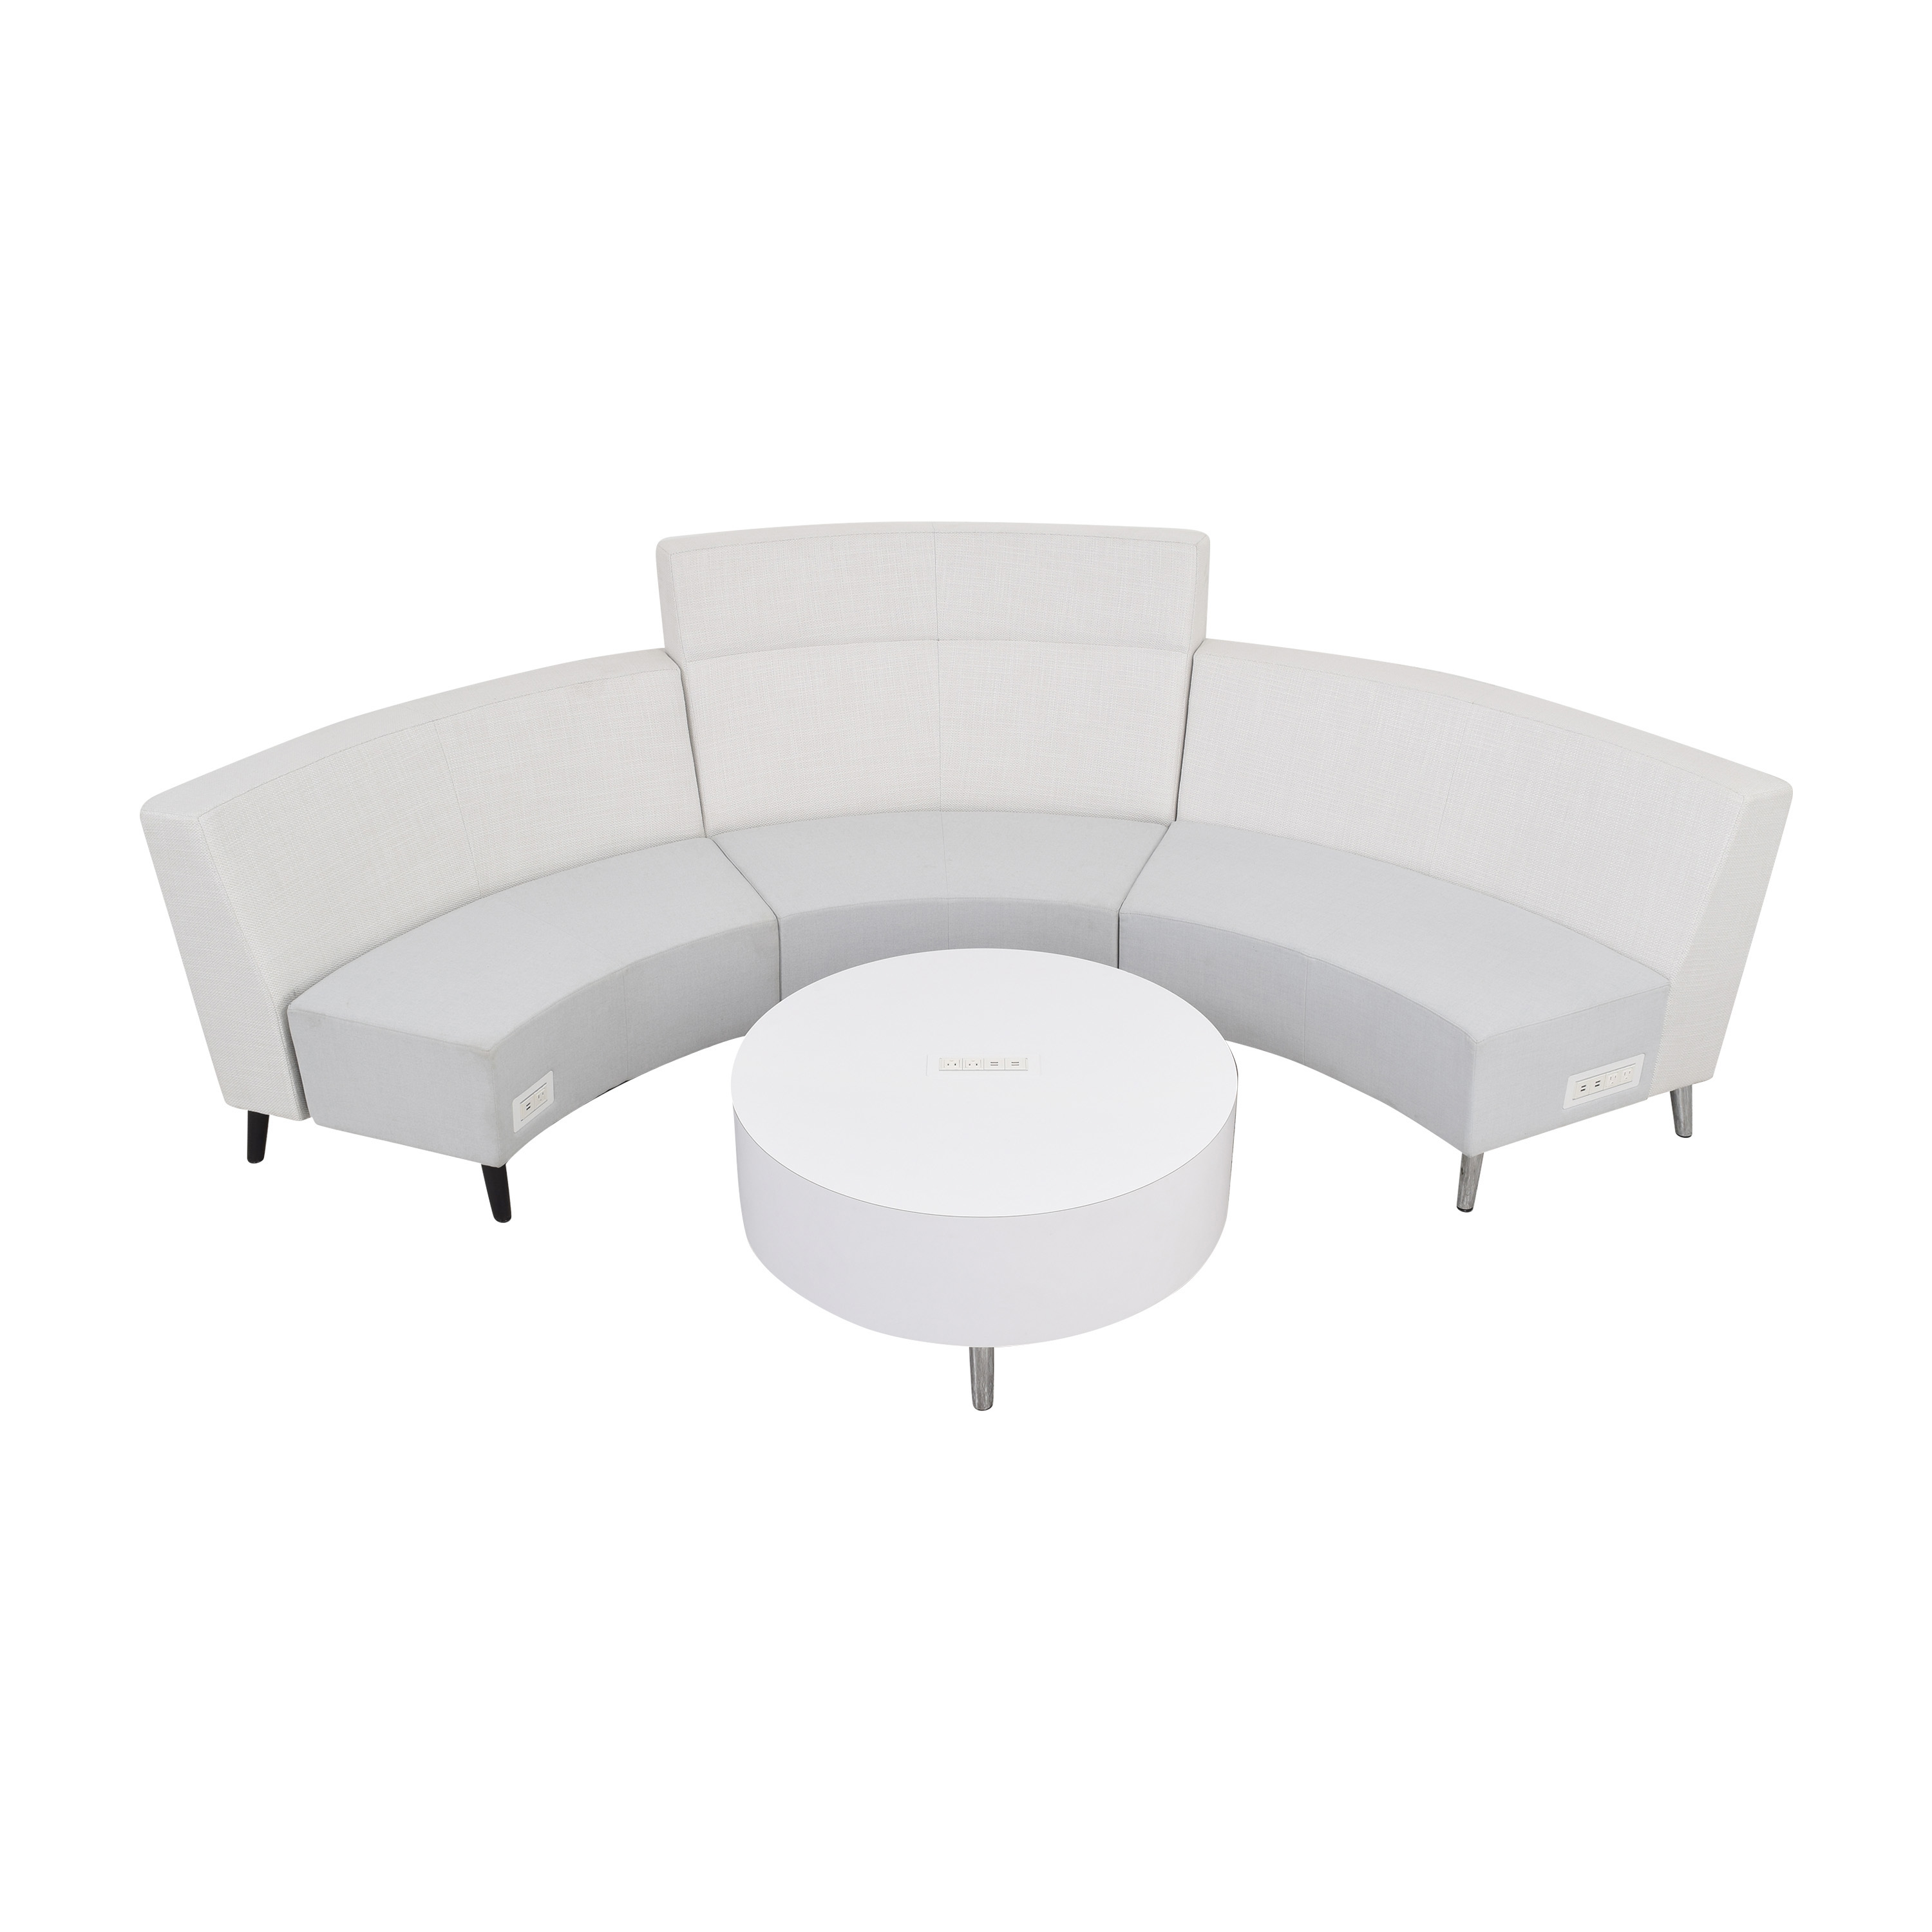 Global Furniture Group River Sectional Sofa with Coffee Table Section sale